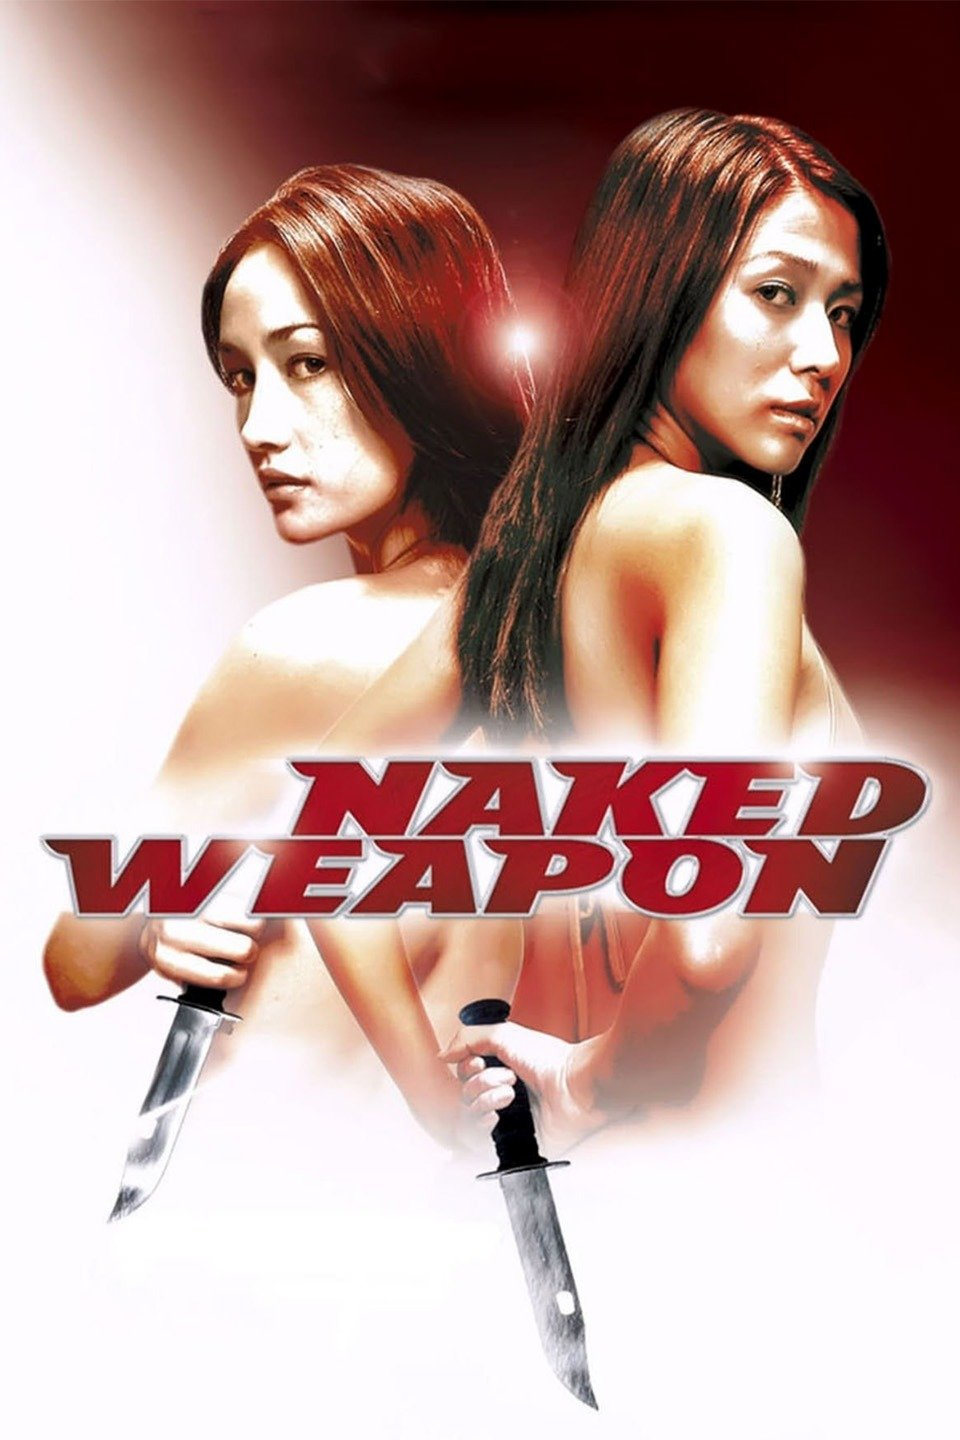 Naked Weapon movie download 480p, Naked Weapon movie download 720p, Naked Weapon movie download 300mb, Naked Weapon movie download free